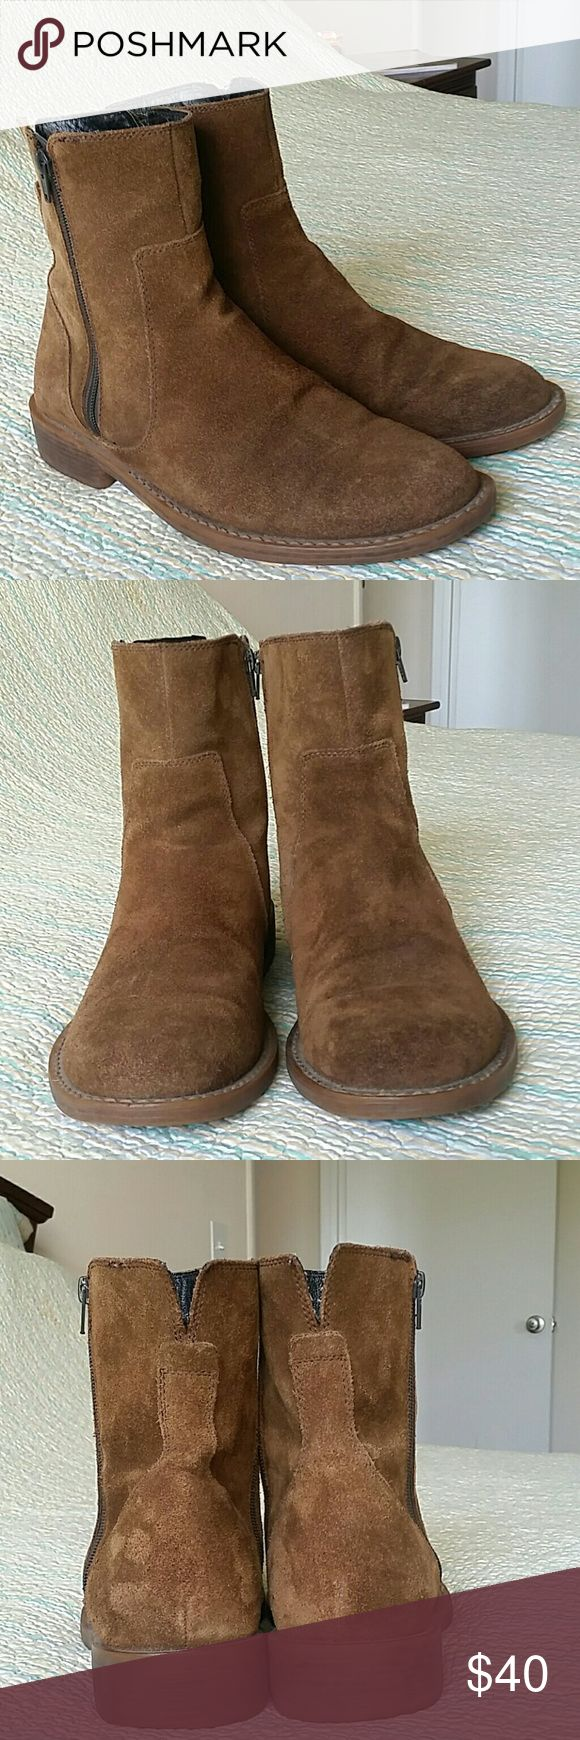 Banana Republic Sz 10 Brown Suede Leather Boots Banana Republic Mens Sz 10 Brown Suede Leather Pull On Ankle Boots Zipper Shoes Banana Republic Shoes Boots